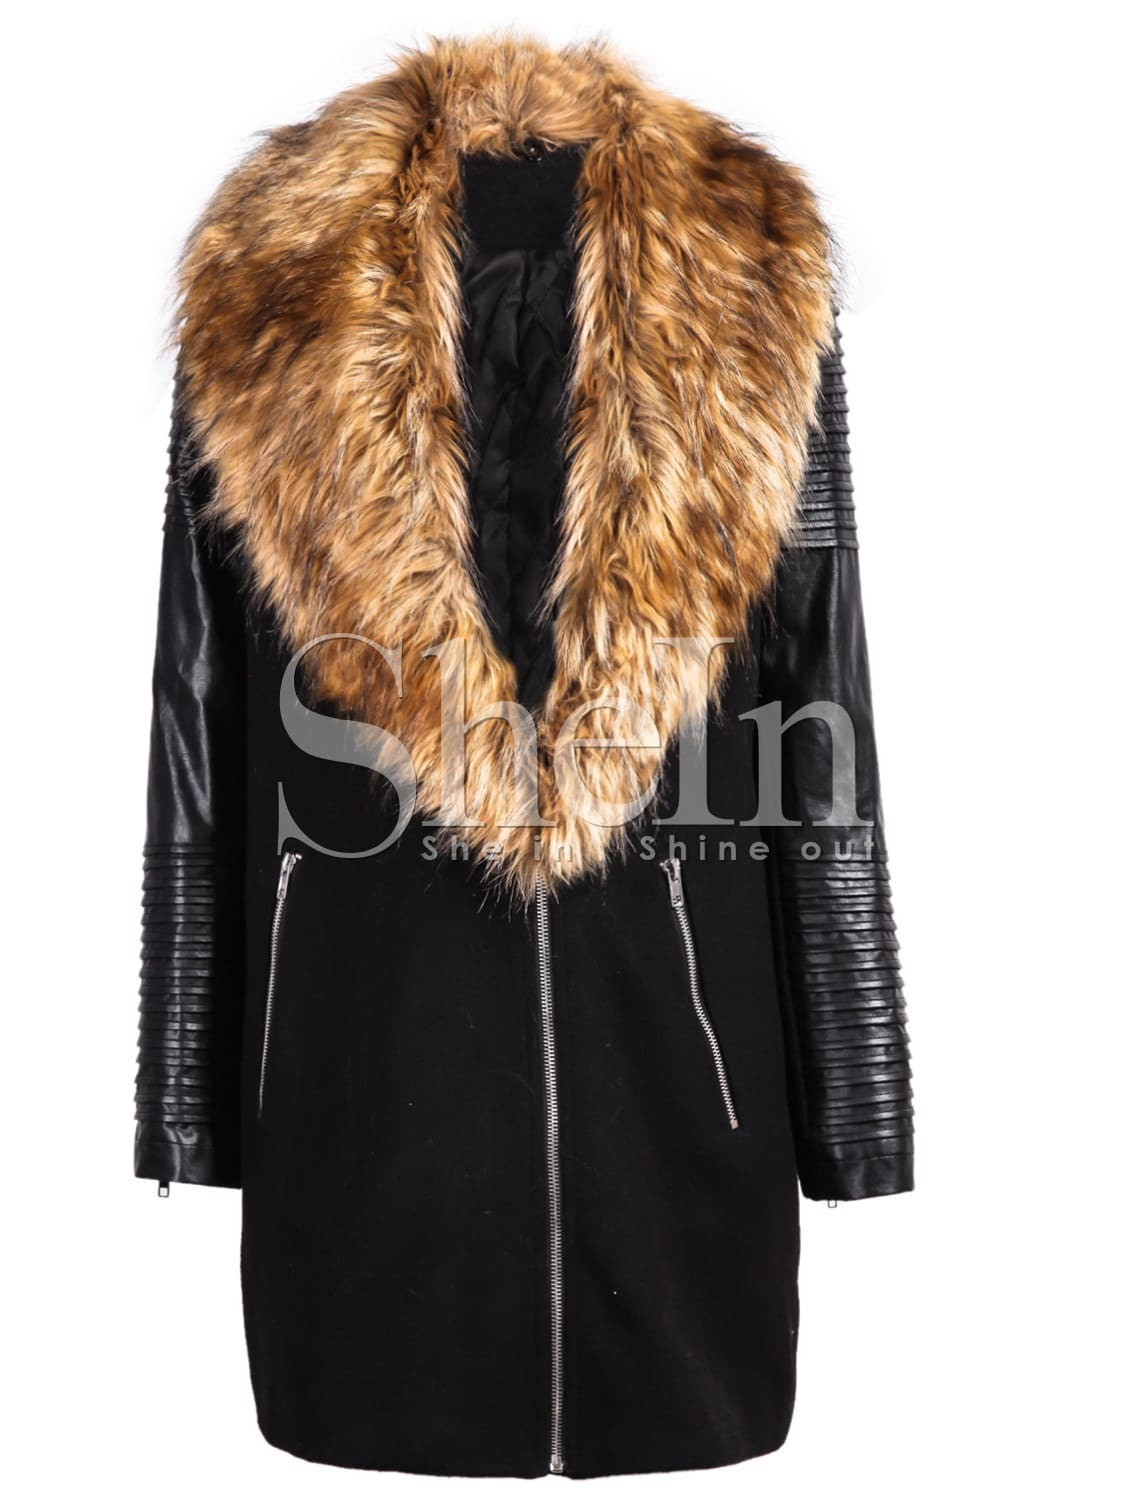 ABOUT FUR STORY - Fur Story is a company that committed to provide the fabulous Fur & Leather products to our customers. We have a large range of ladies Mink Fur Coats&Vests, Fox Fur Coats&Vests, Rabbit Fur Coats&Vests, along with Shearling Sheepskin and Raccoon Fur Jackets /5(2).